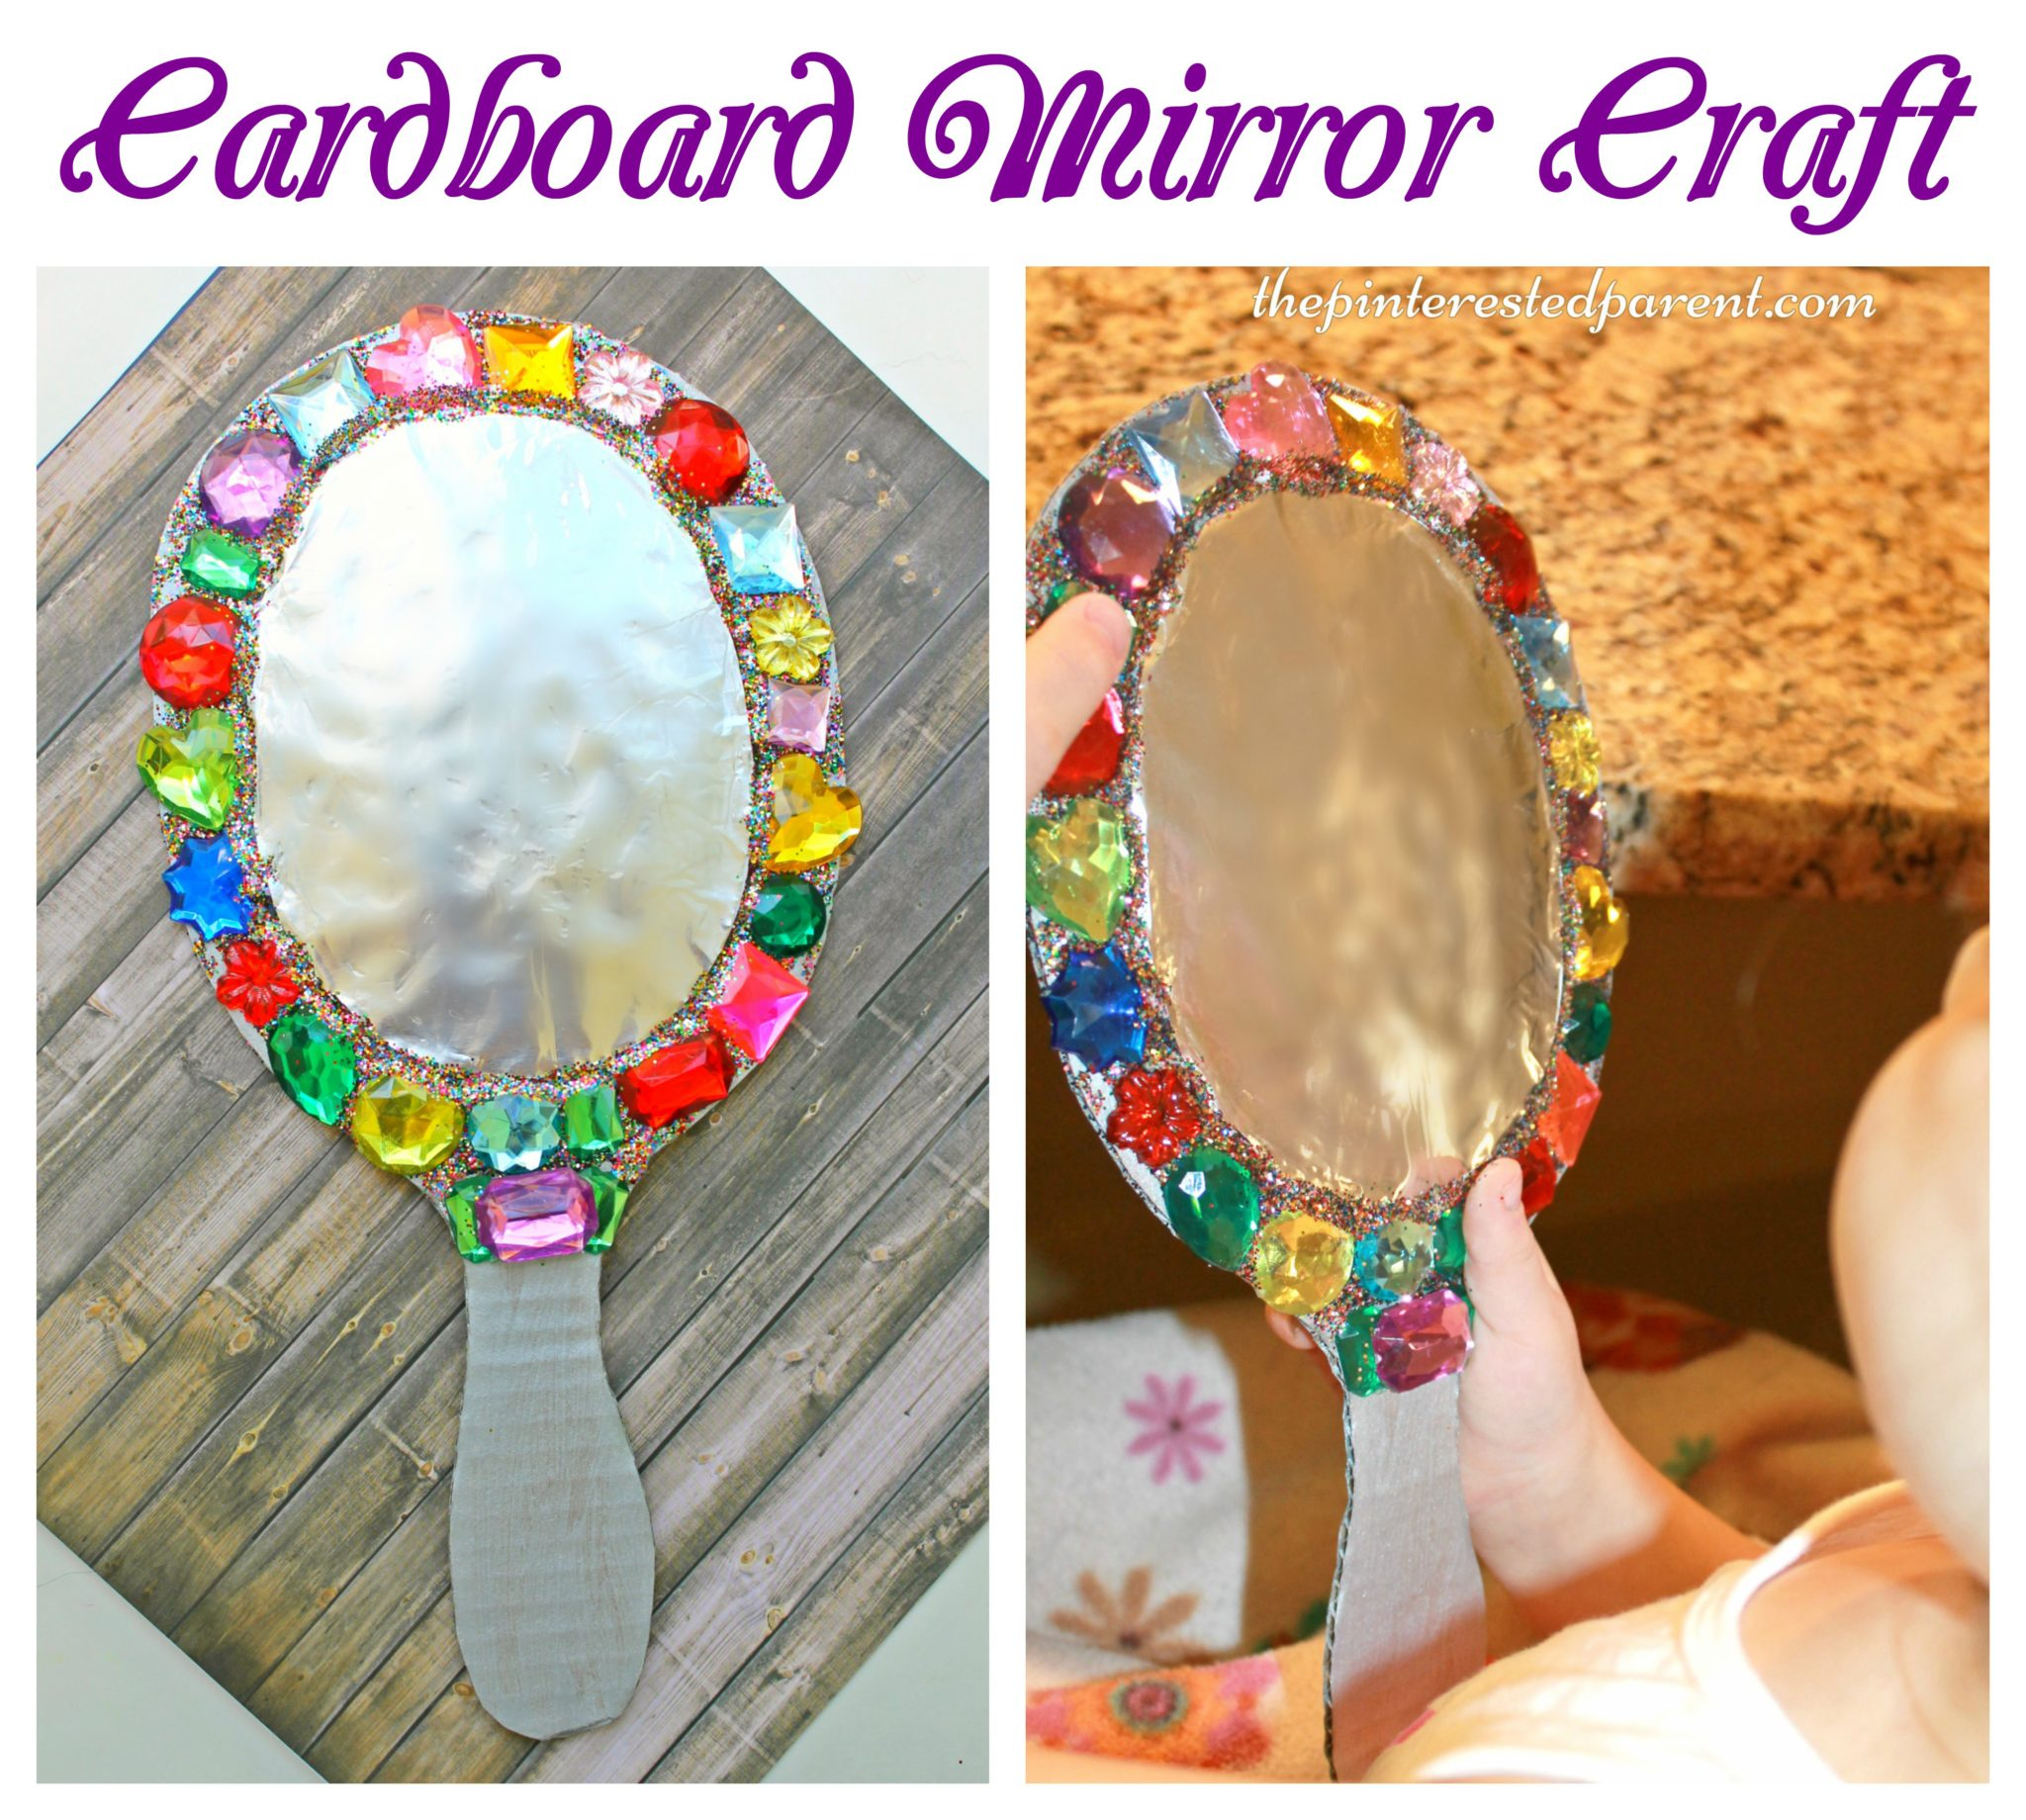 Jeweled Cardboard Mirror Craft The Pinterested Parent